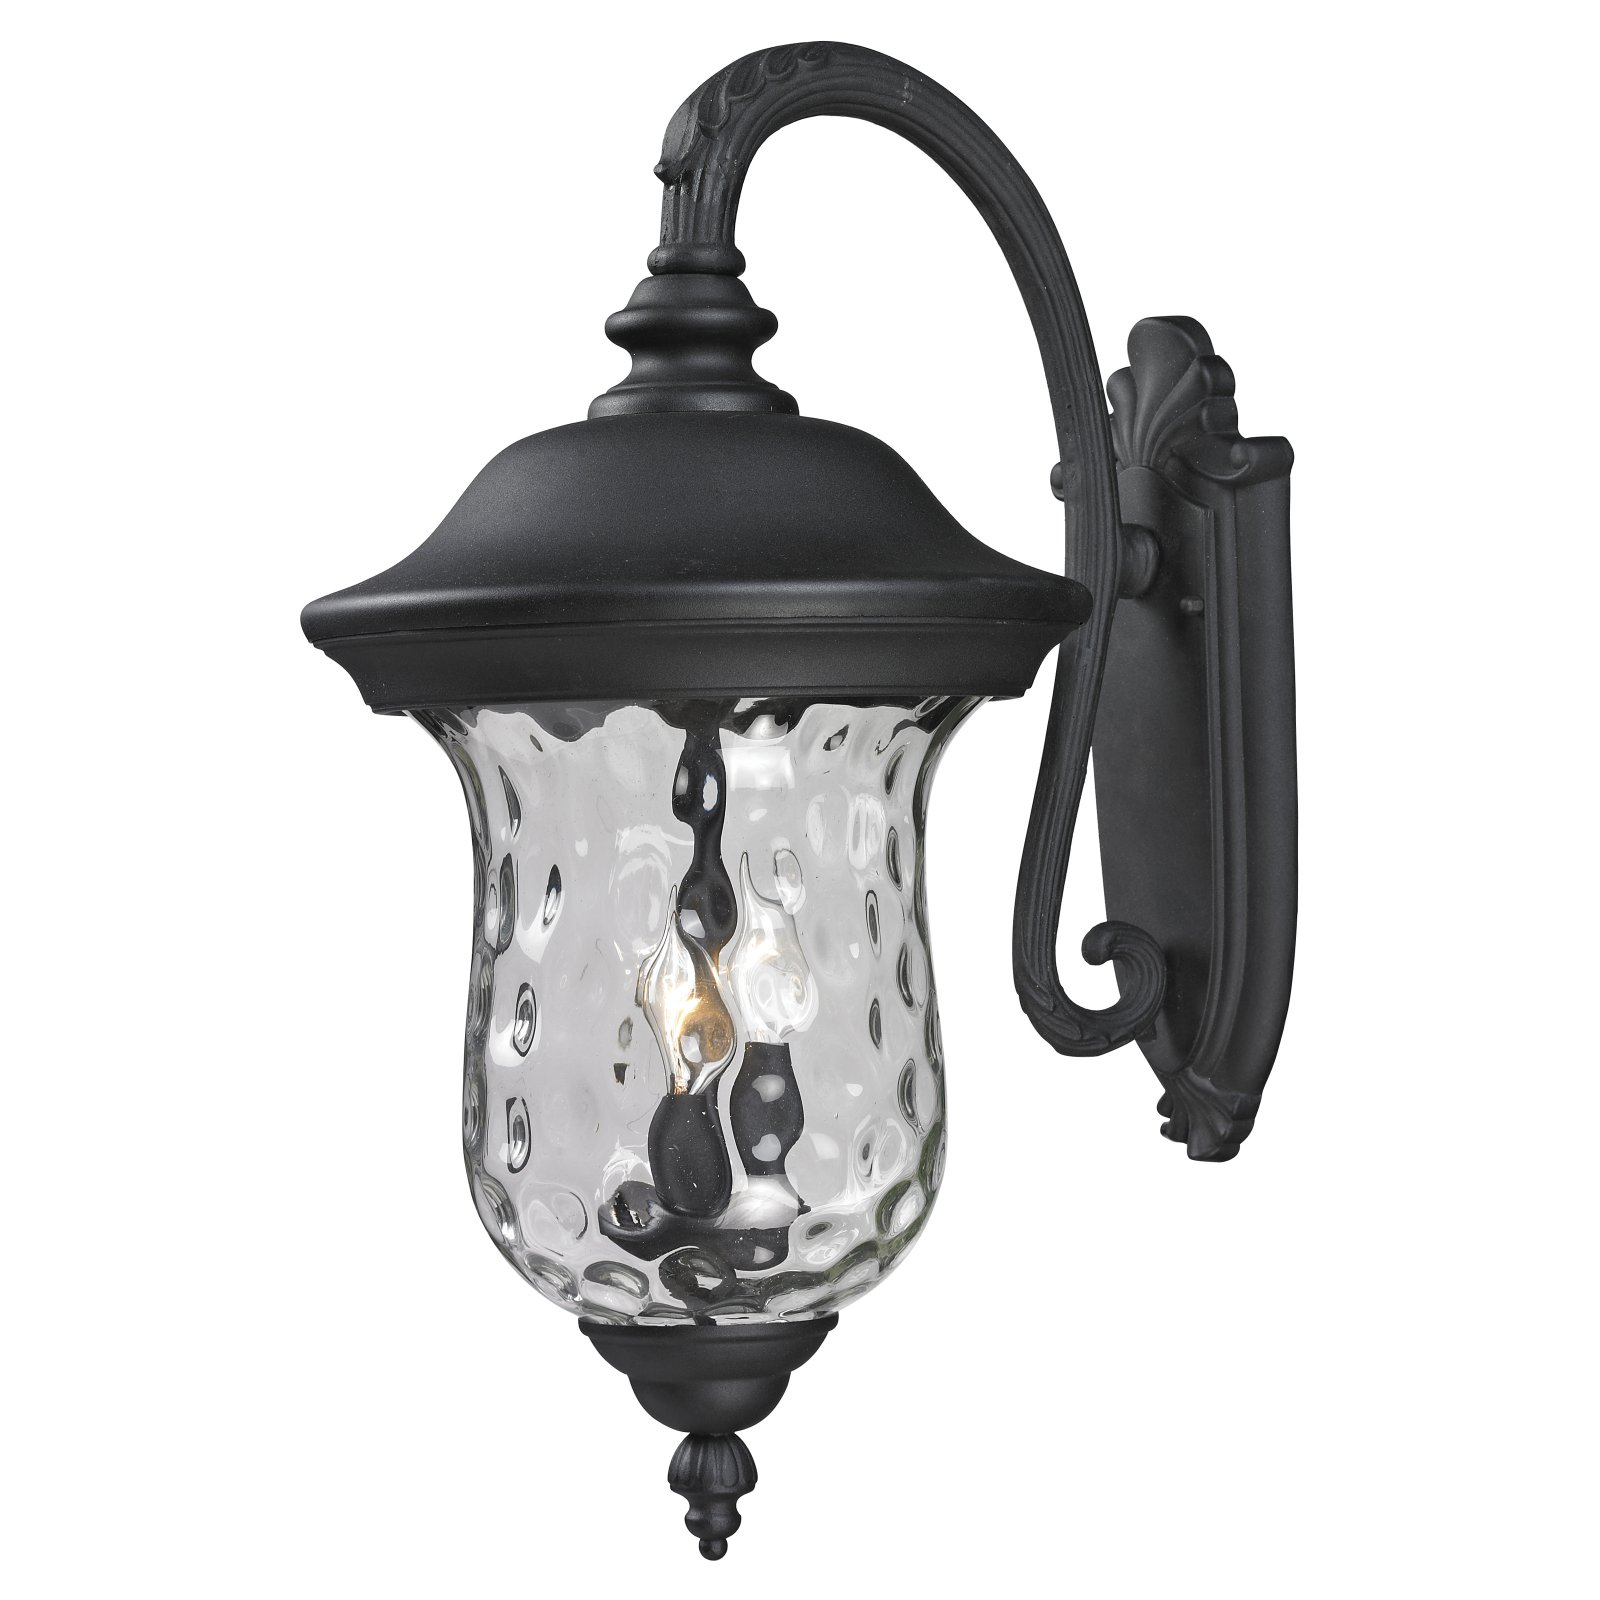 Z-Lite 534 Armstrong Downward Outdoor Sconce